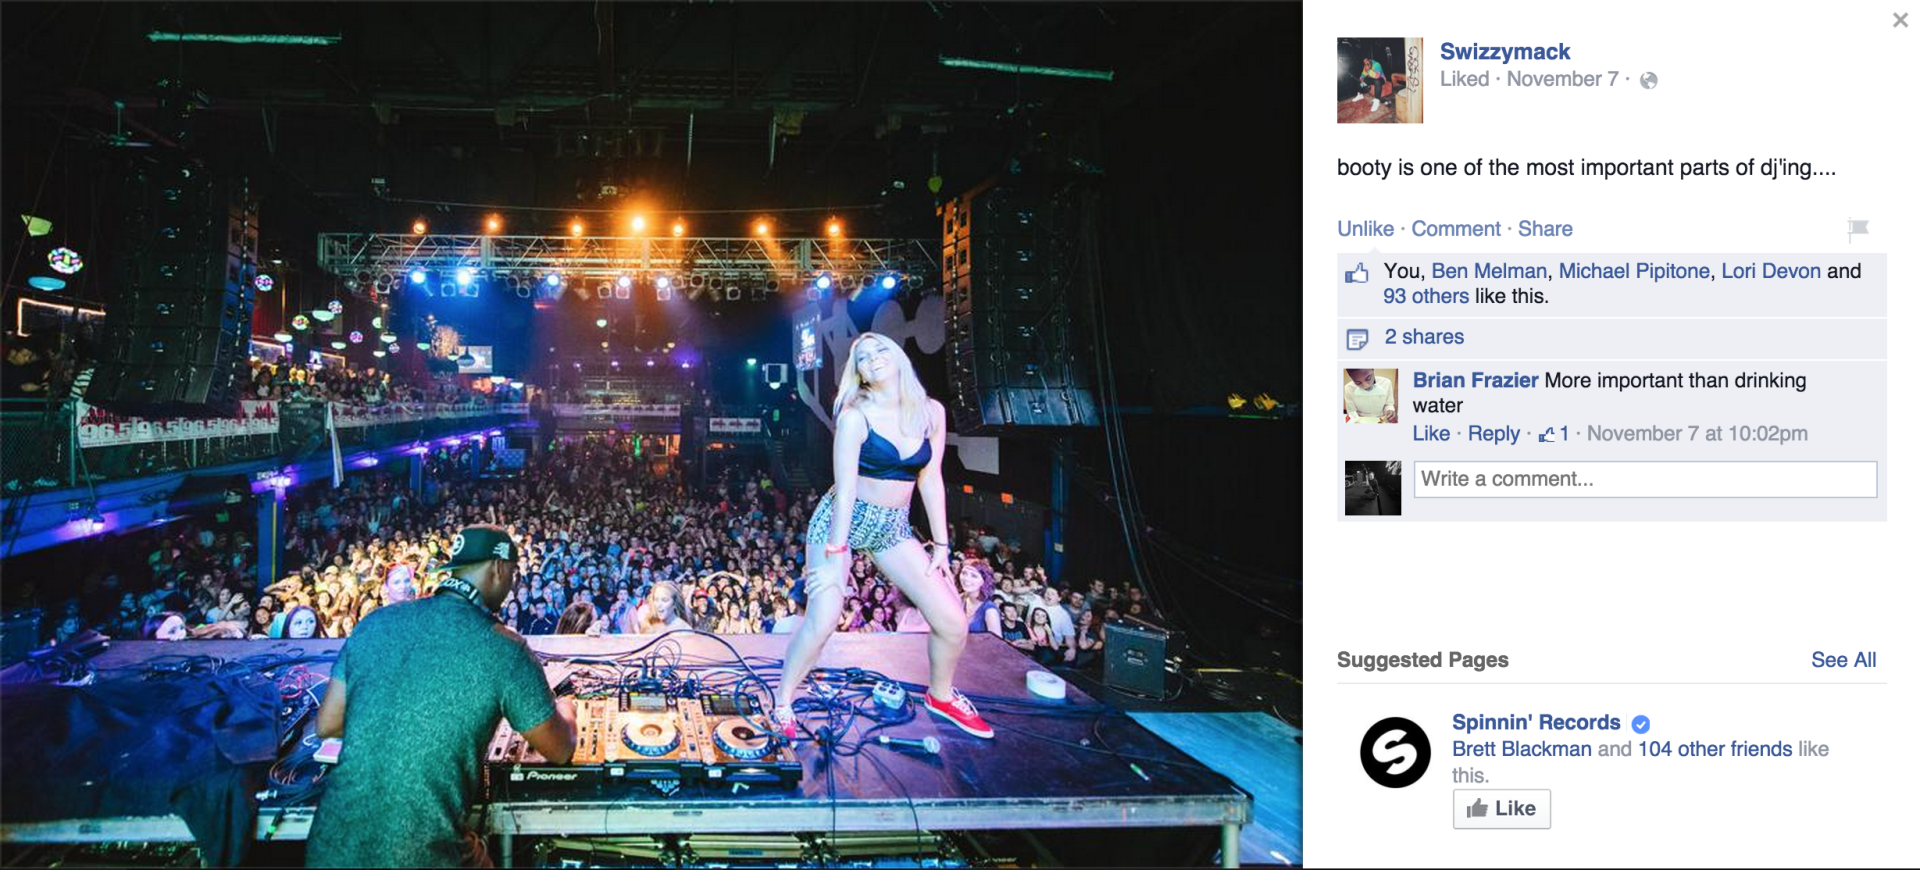 Swizzymack sharing my photo from the Electric Factory.